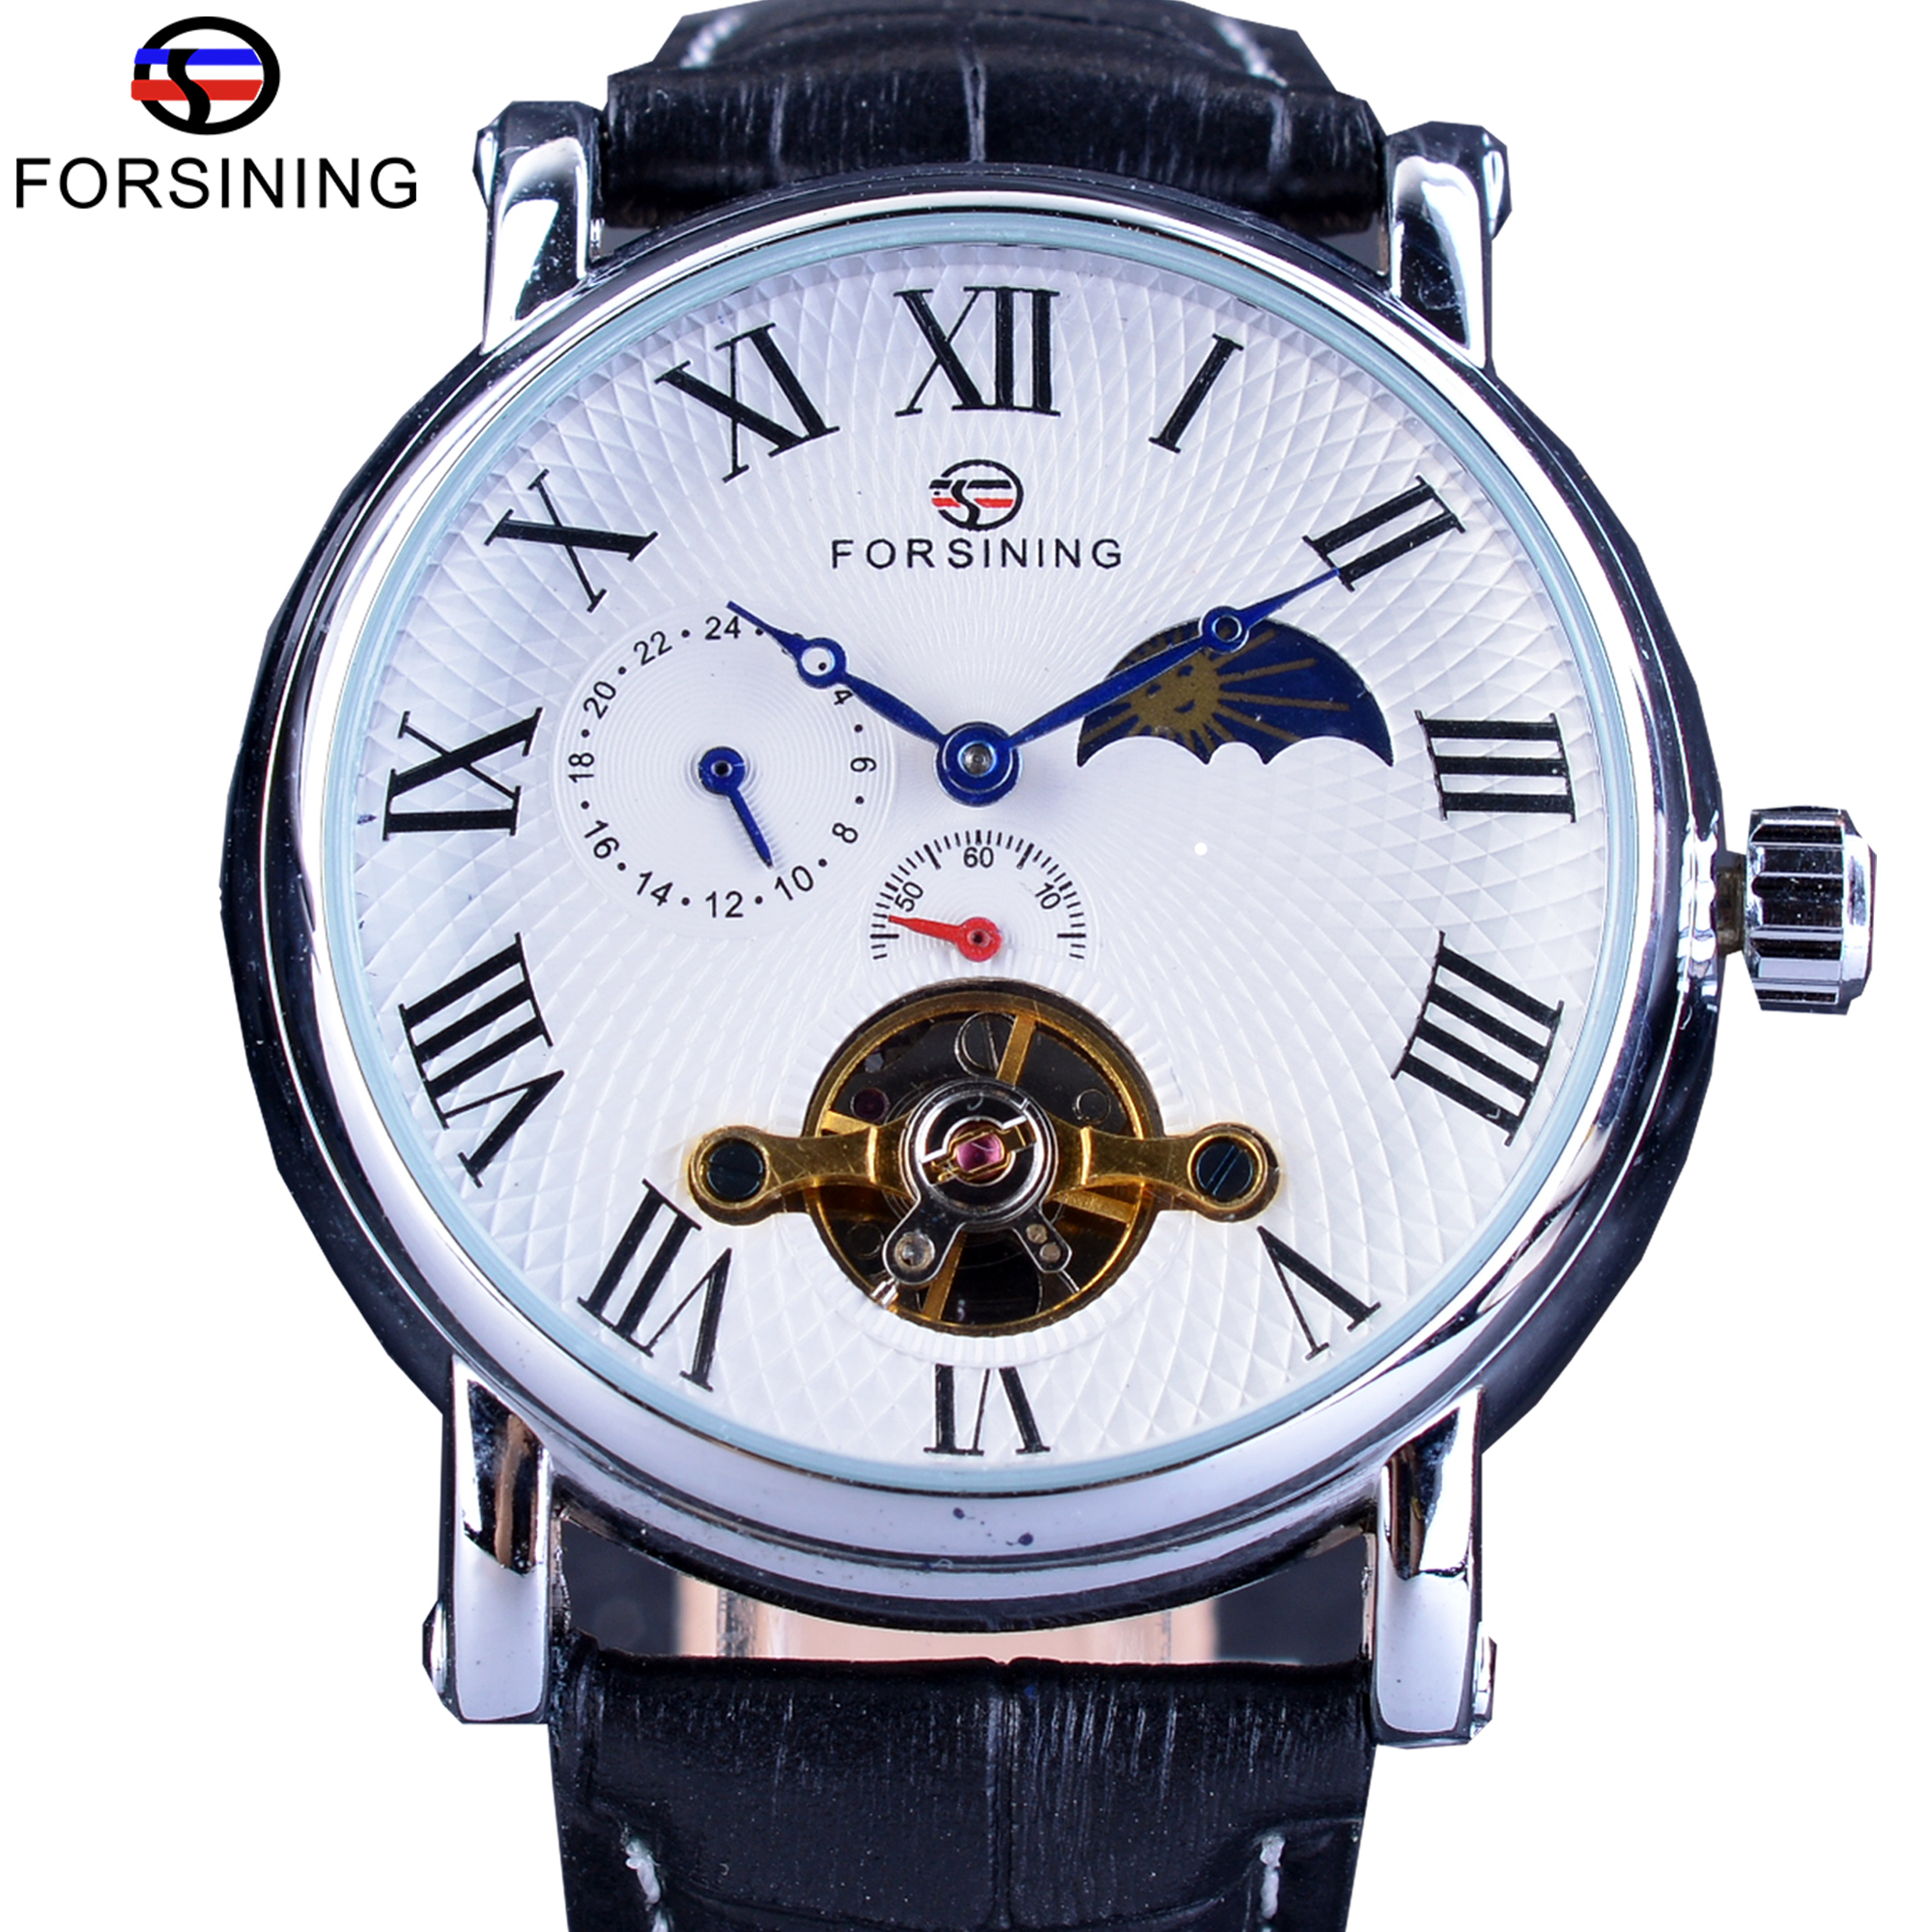 grande jlc impress case swivel fashionable edition blog that back n luxury tag review d reverso singapore watches mens nd